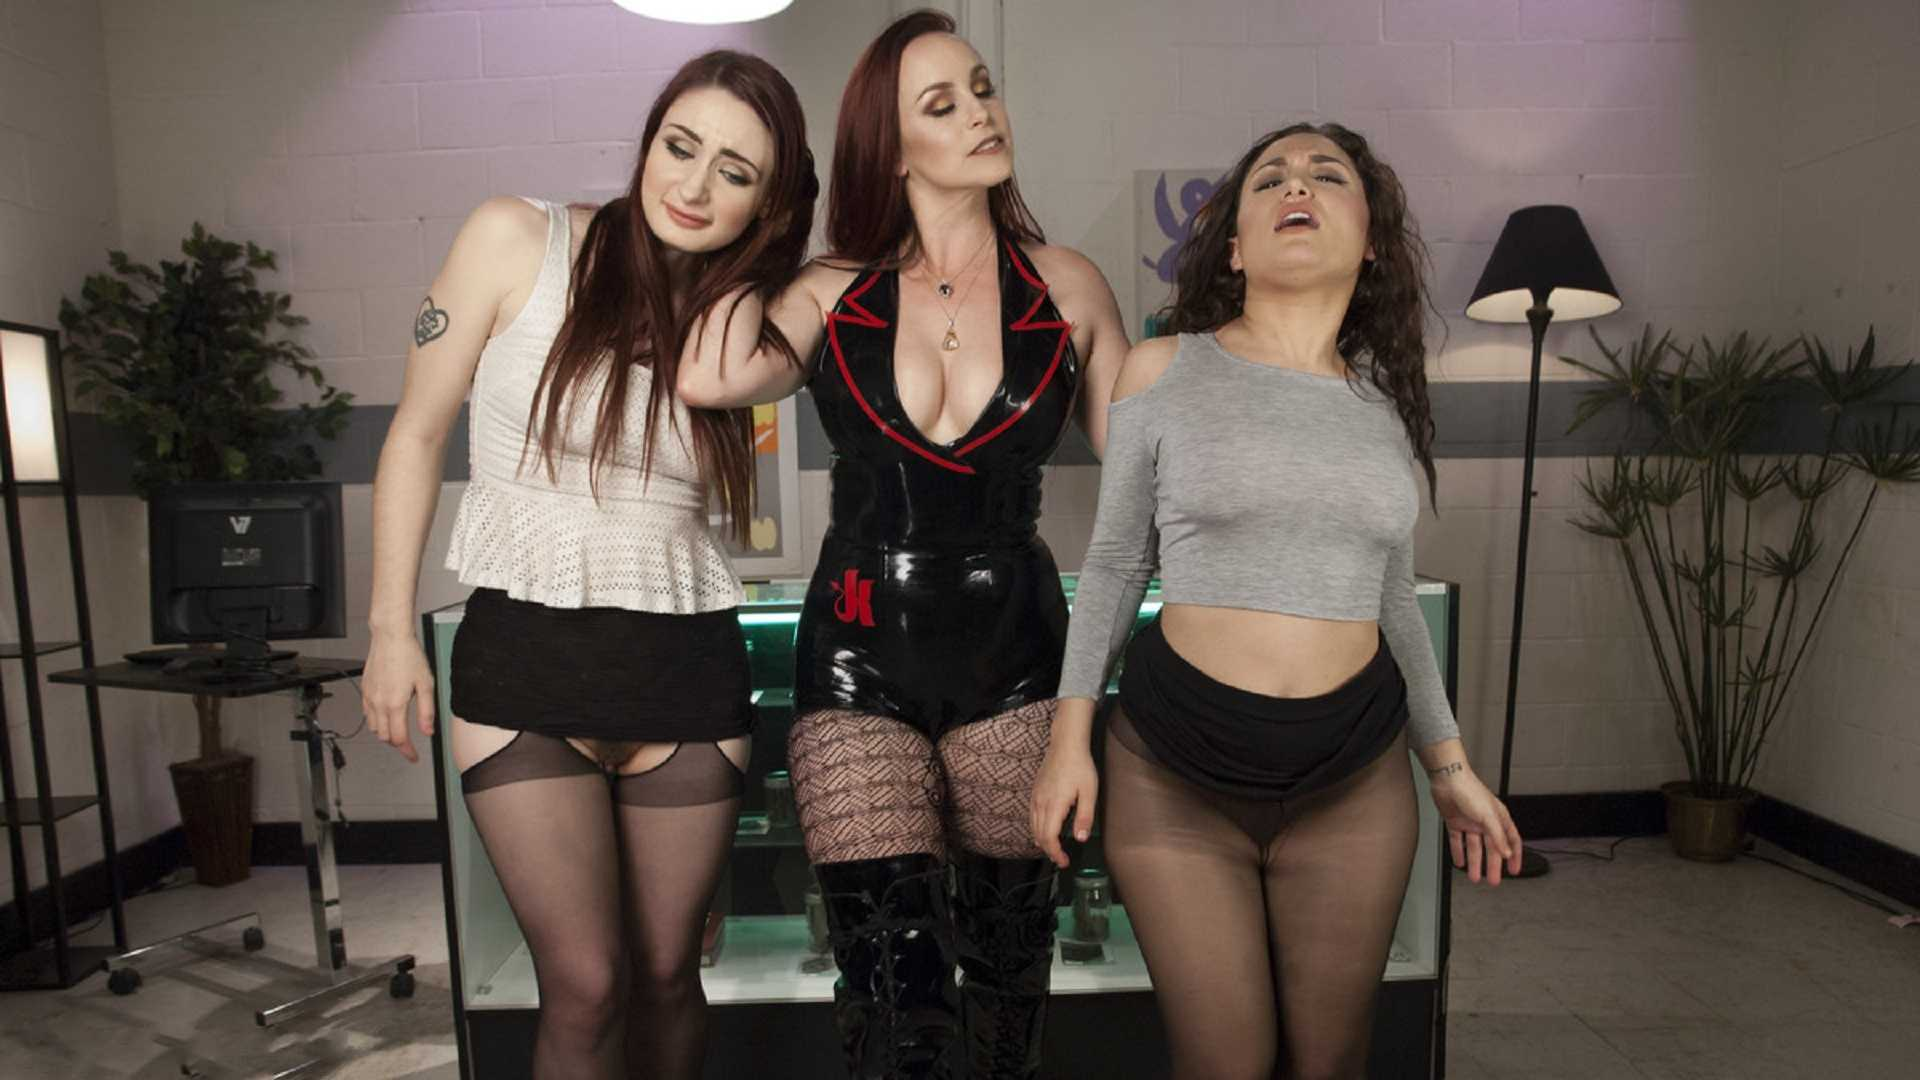 Bella Rossi Dispenses pain and Pleasure to Gabriella & Violet's Asses – Violet Monroe, Gabriella Paltrova, Bella Rossi  | HD 720p | May 19, 2017